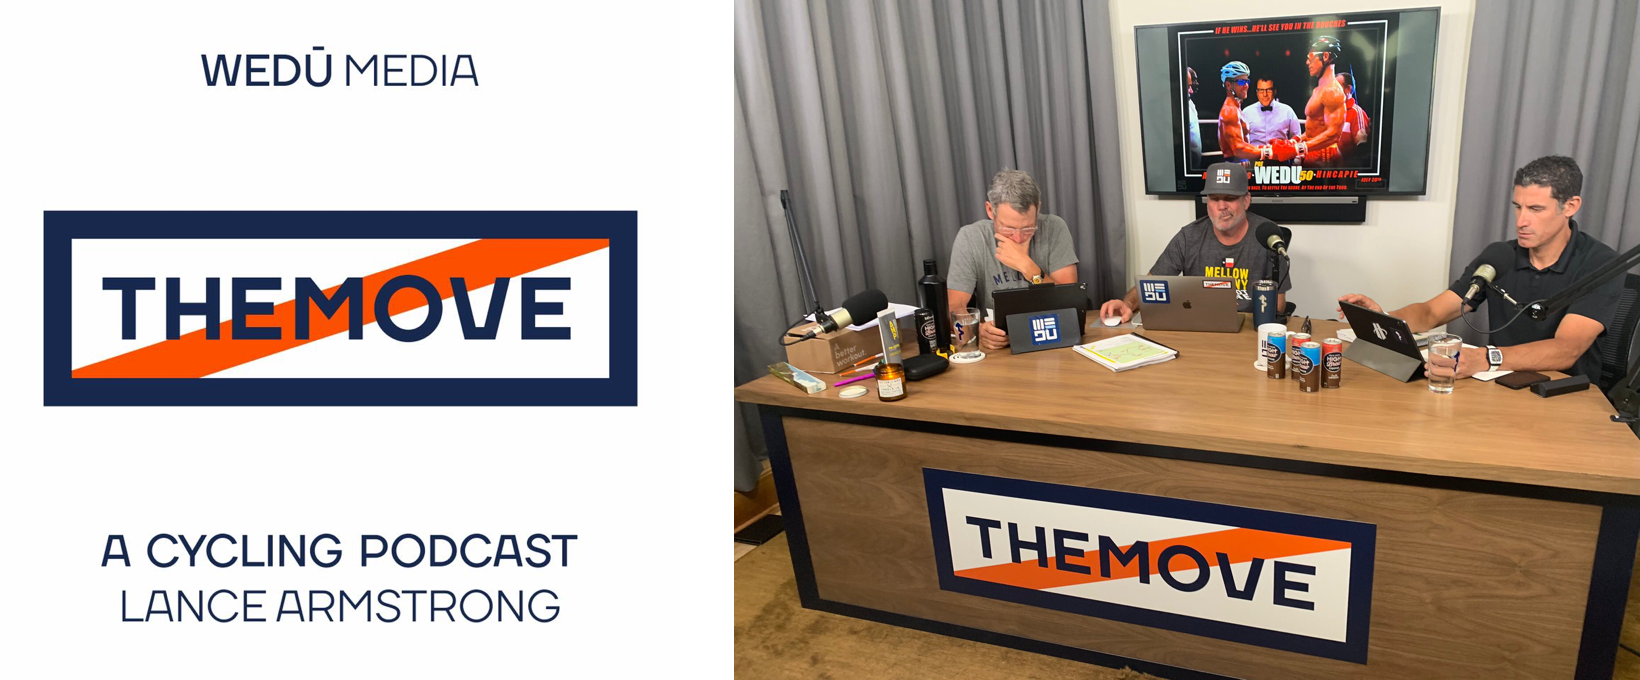 """The crew of """"THE MOVE"""" podcast along with its artwork"""